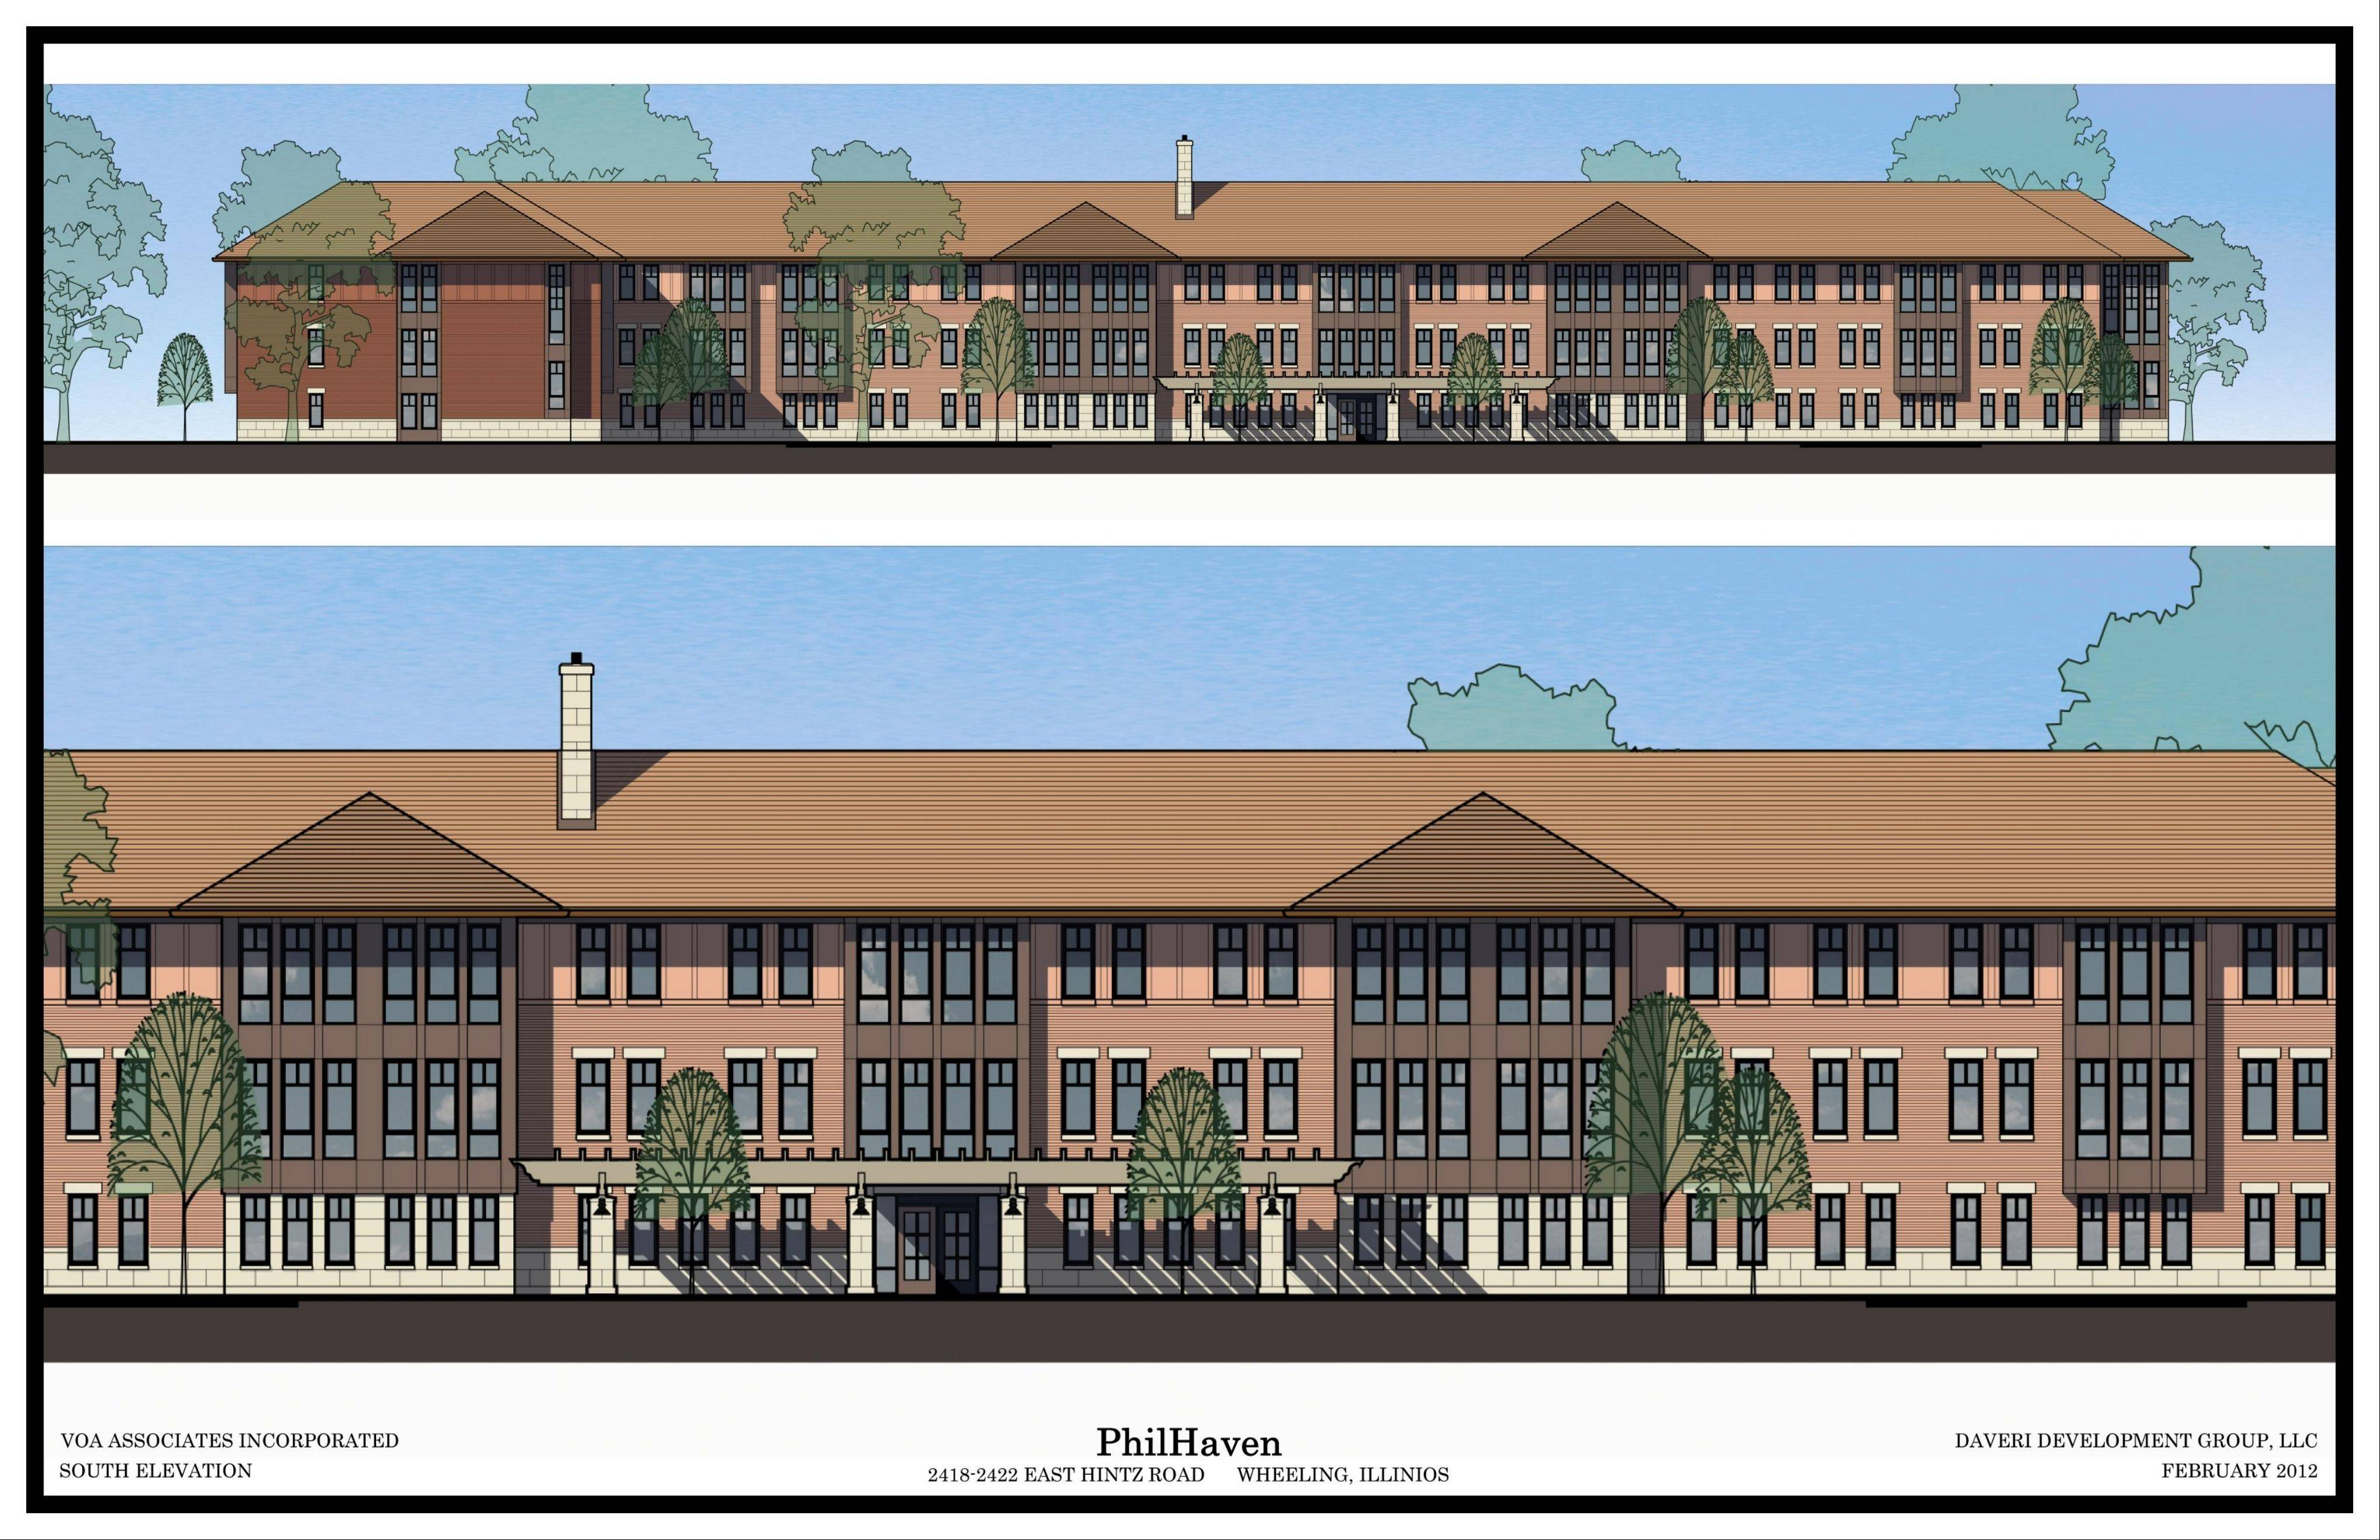 A rendering of PhilHaven, a proposed supportive living development for individuals with disabilities at 2418 W. Hintz Road, Wheeling.